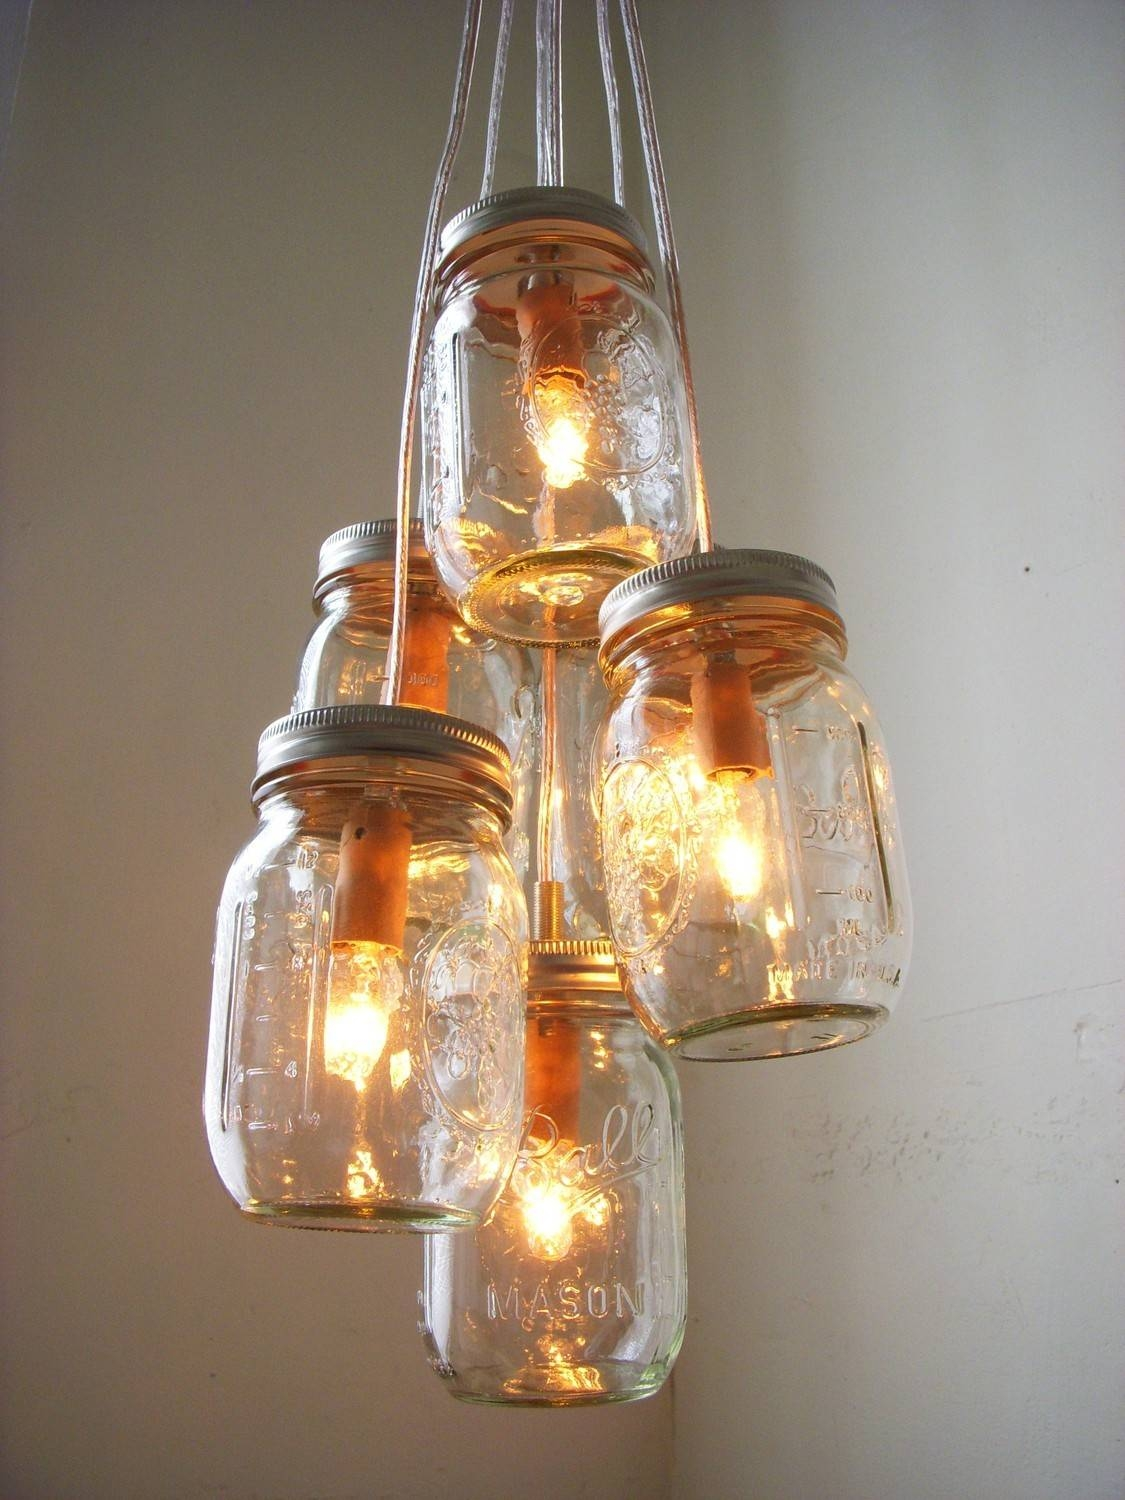 Rustic Pendant Lighting | Home Lighting Insight regarding Rustic Pendant Lighting (Image 11 of 15)